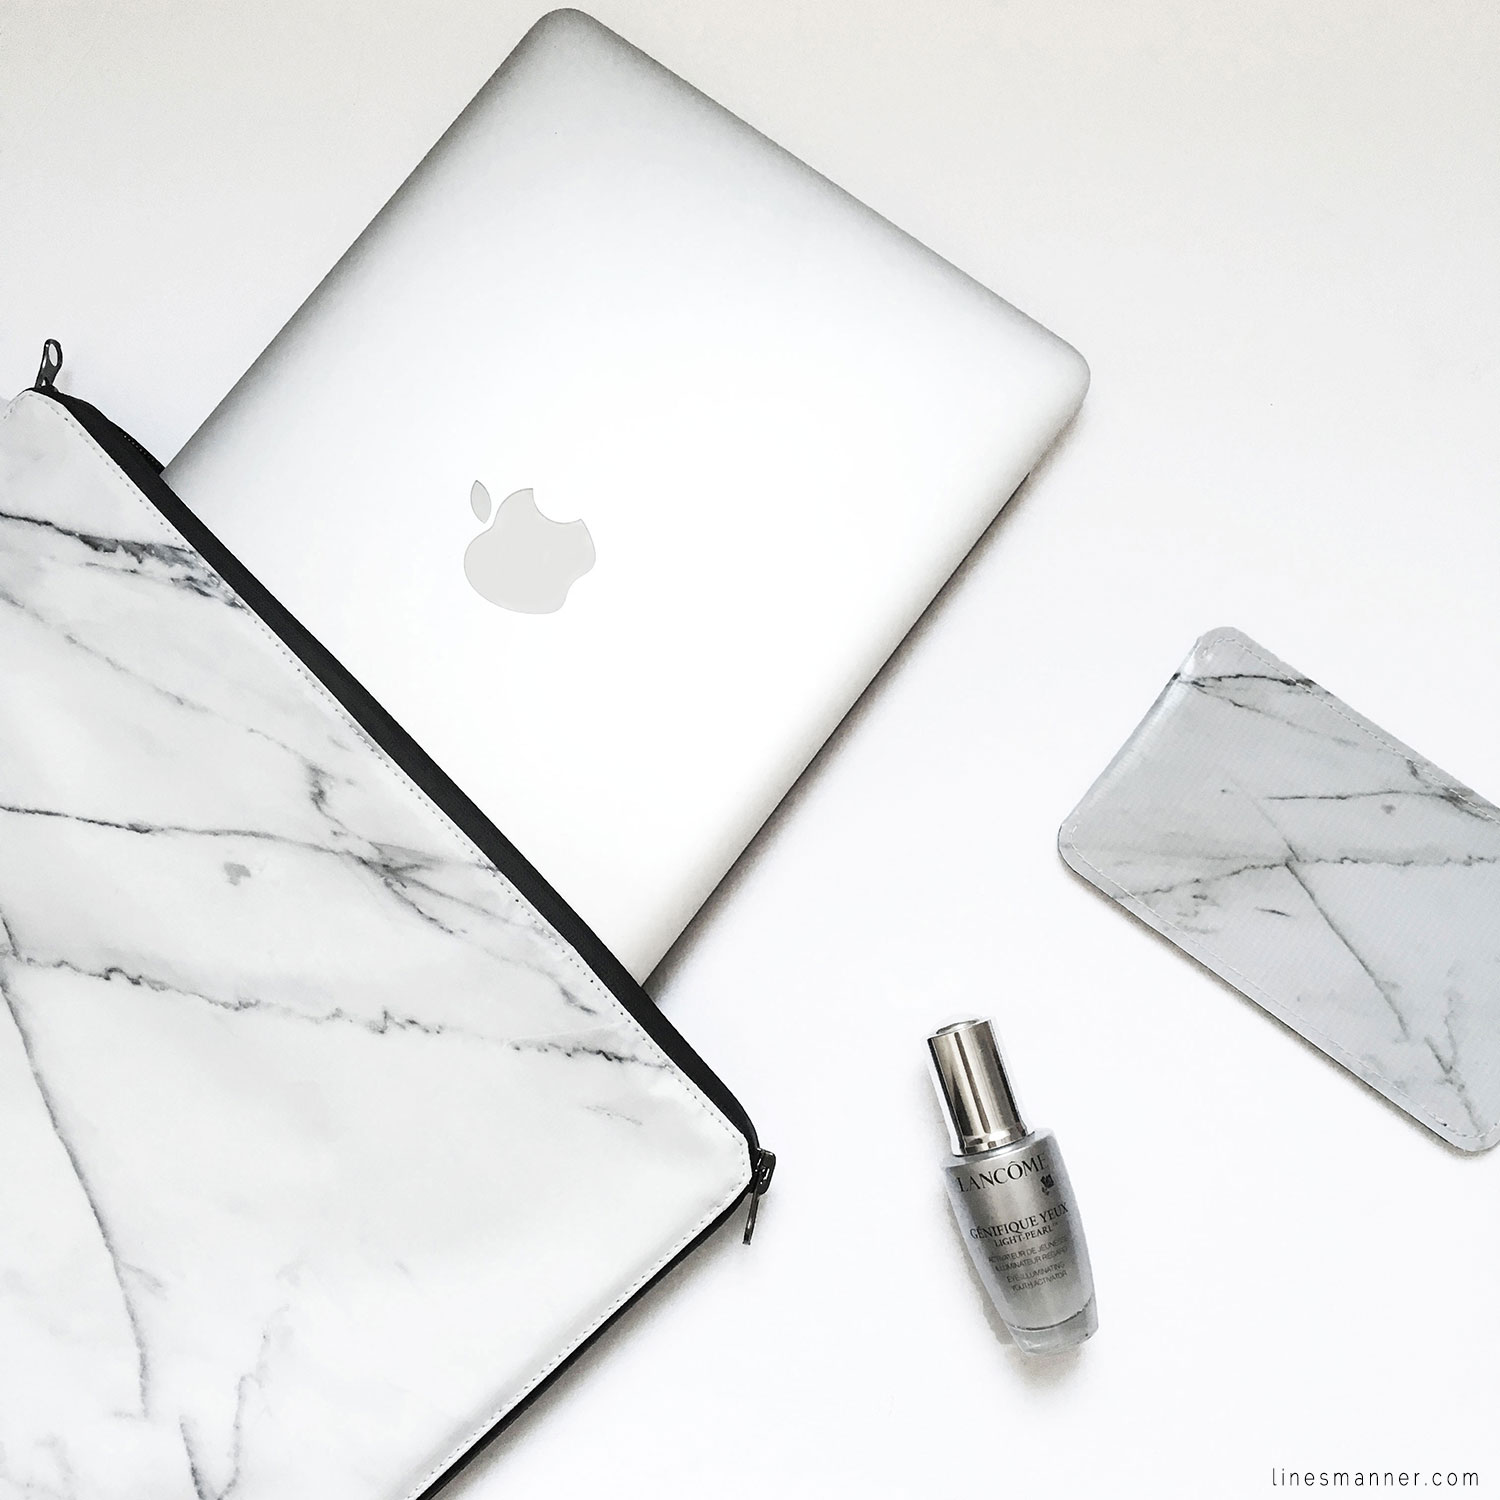 Lines-Manner-Flatlay-Monochrome-Essentials-Details-Jewellery-Hardware-Morning_routine-Black_and_white-White-Minimal-Impact-Classics-Timeless-Simplicity-8